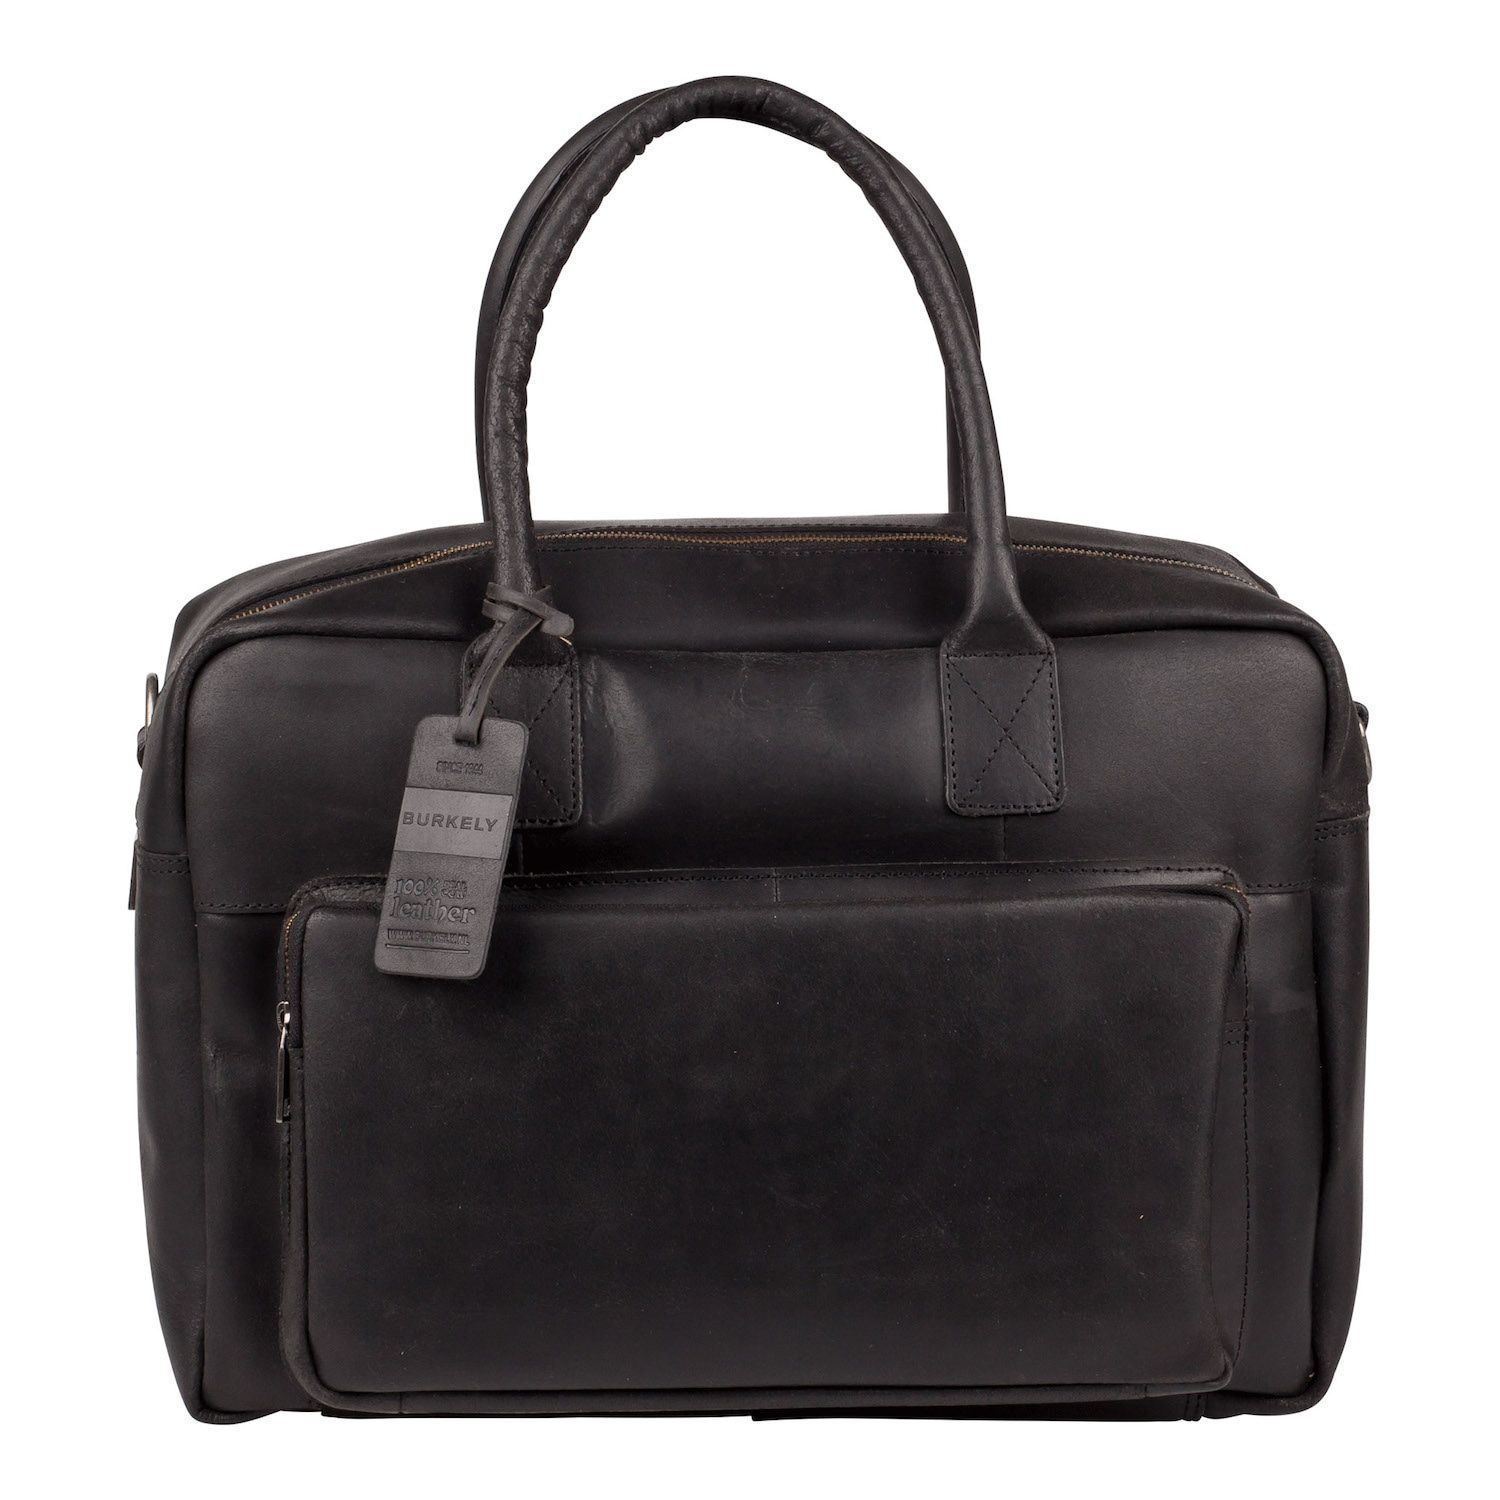 Laptoptas Burkely Mitch Vintage Businessbag Black 14 inch